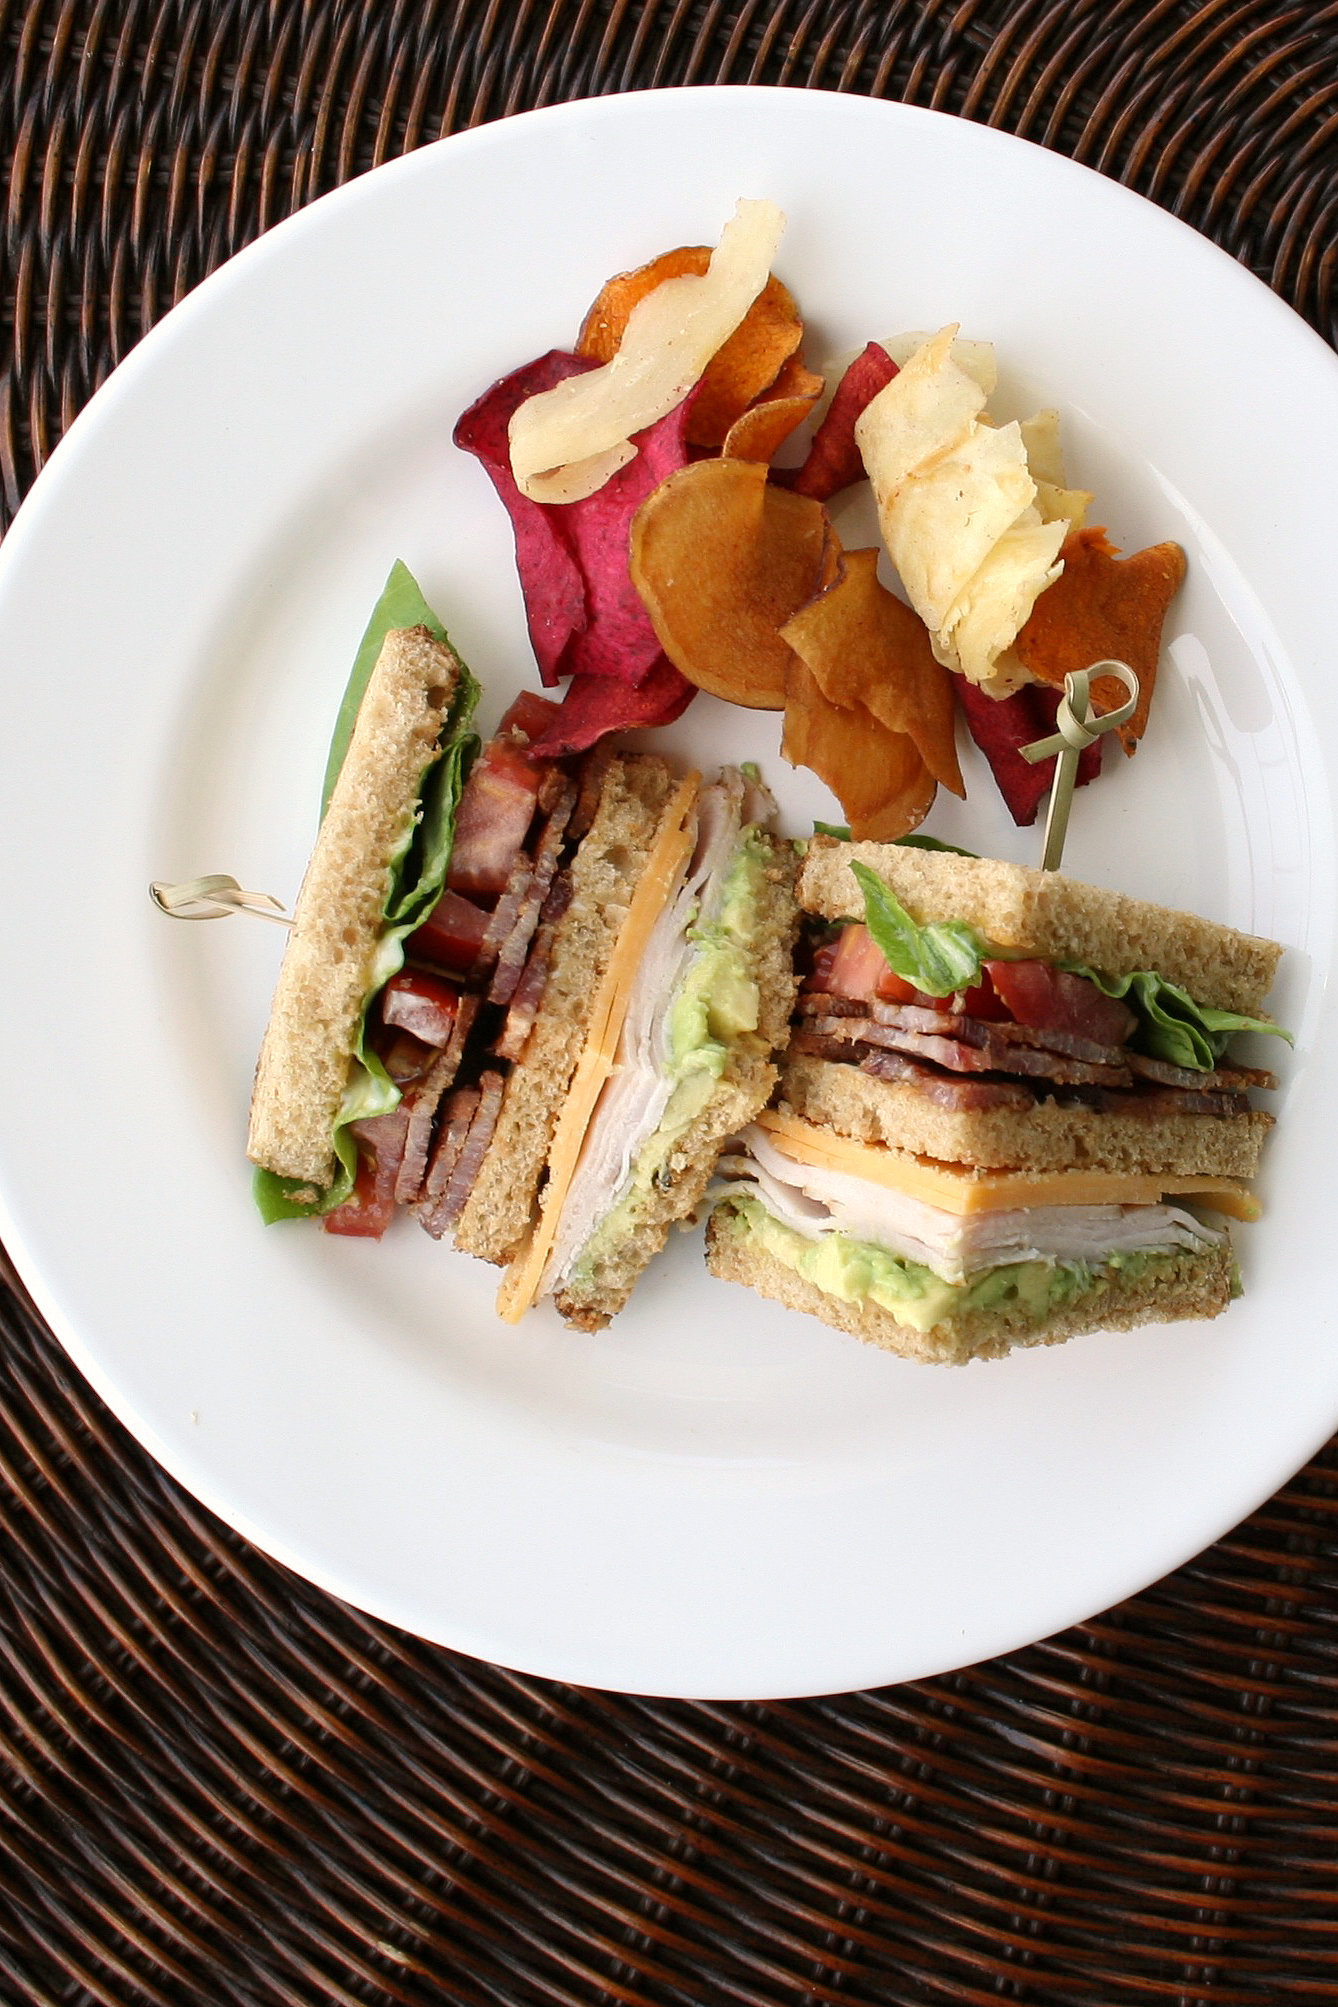 Flagrant Club Like Burgers Or Fried Come Stylesand Some Prefer Turkey To Rye Bread To How To Make Club Sandwich Popsugar Middle East Food A Myriad nice food Turkey Club Sandwich